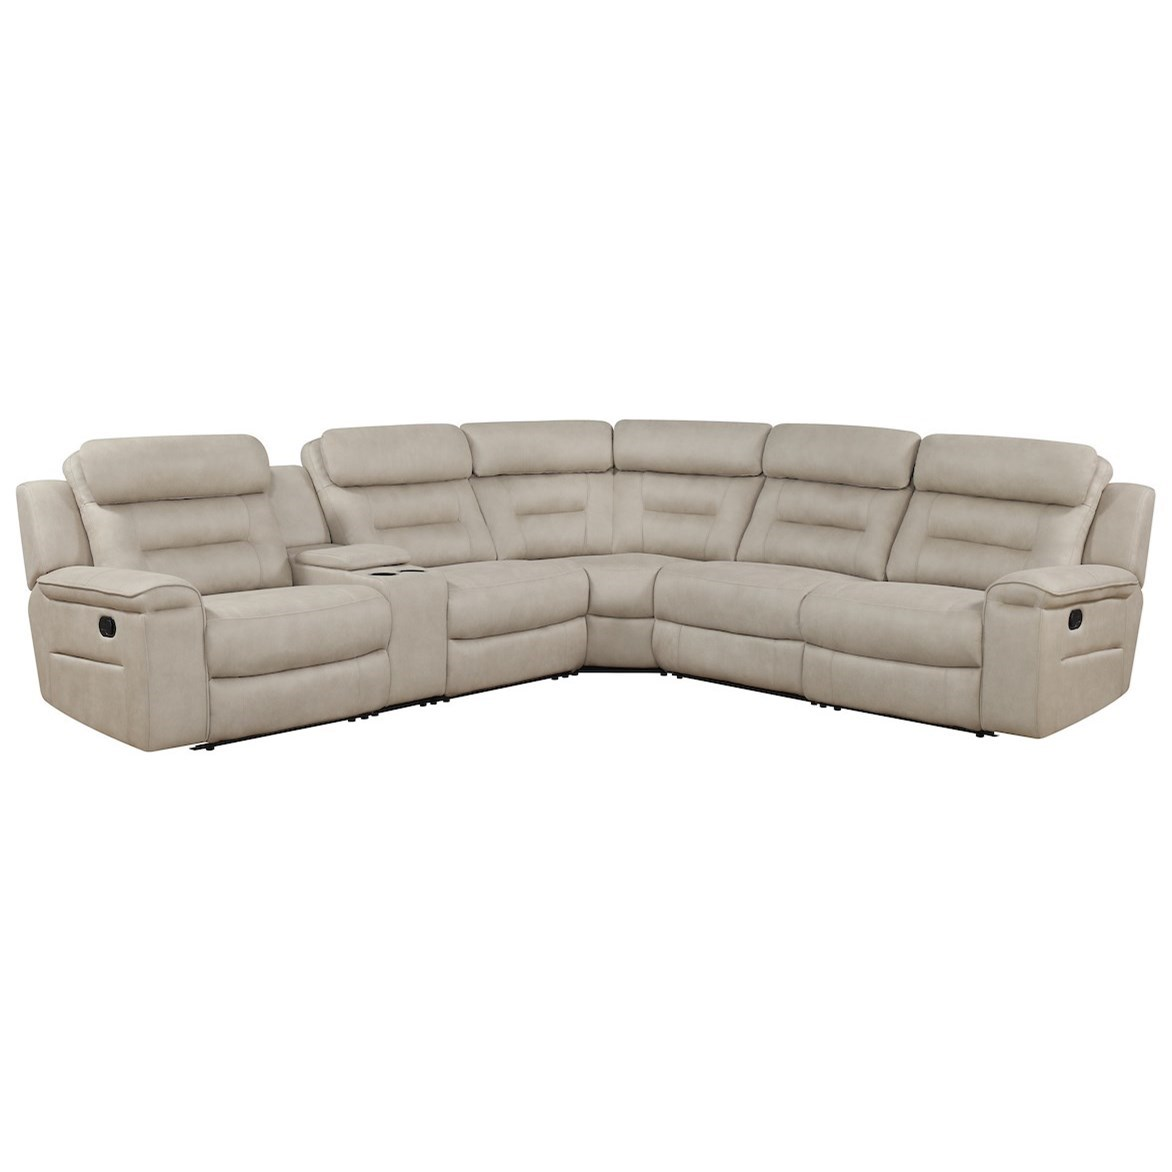 Islander 4-Seat Pwr Reclining Sectional w/ Pwr Head by Klaussner International at Northeast Factory Direct